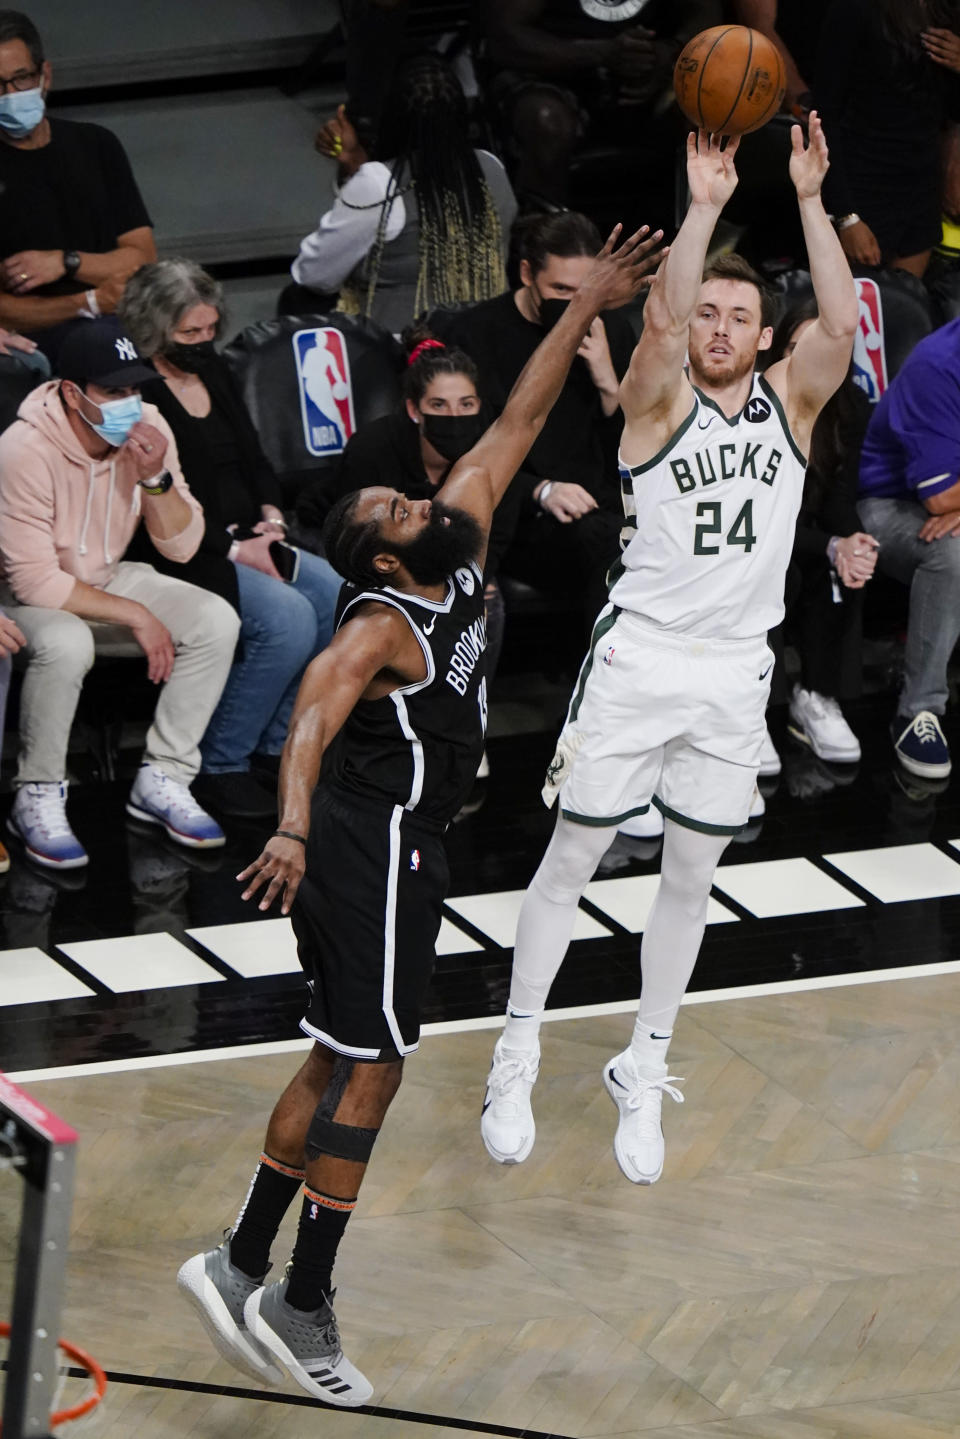 Milwaukee Bucks' Pat Connaughton, right, shoots over Brooklyn Nets' James Harden, left, during the second half of Game 7 of a second-round NBA basketball playoff series Saturday, June 19, 2021, in New York. (AP Photo/Frank Franklin II)